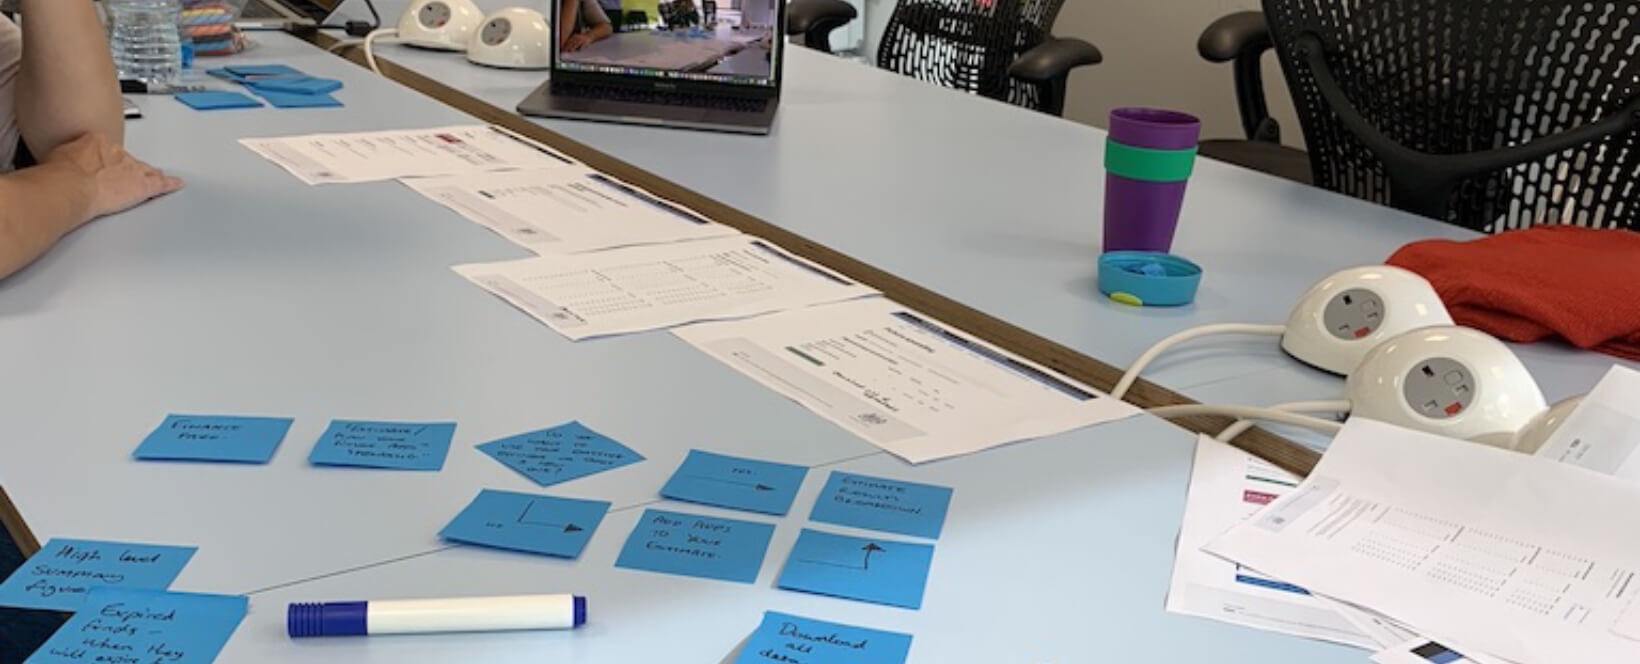 Photo showing a desk and post-it notes in a UX design workshop.